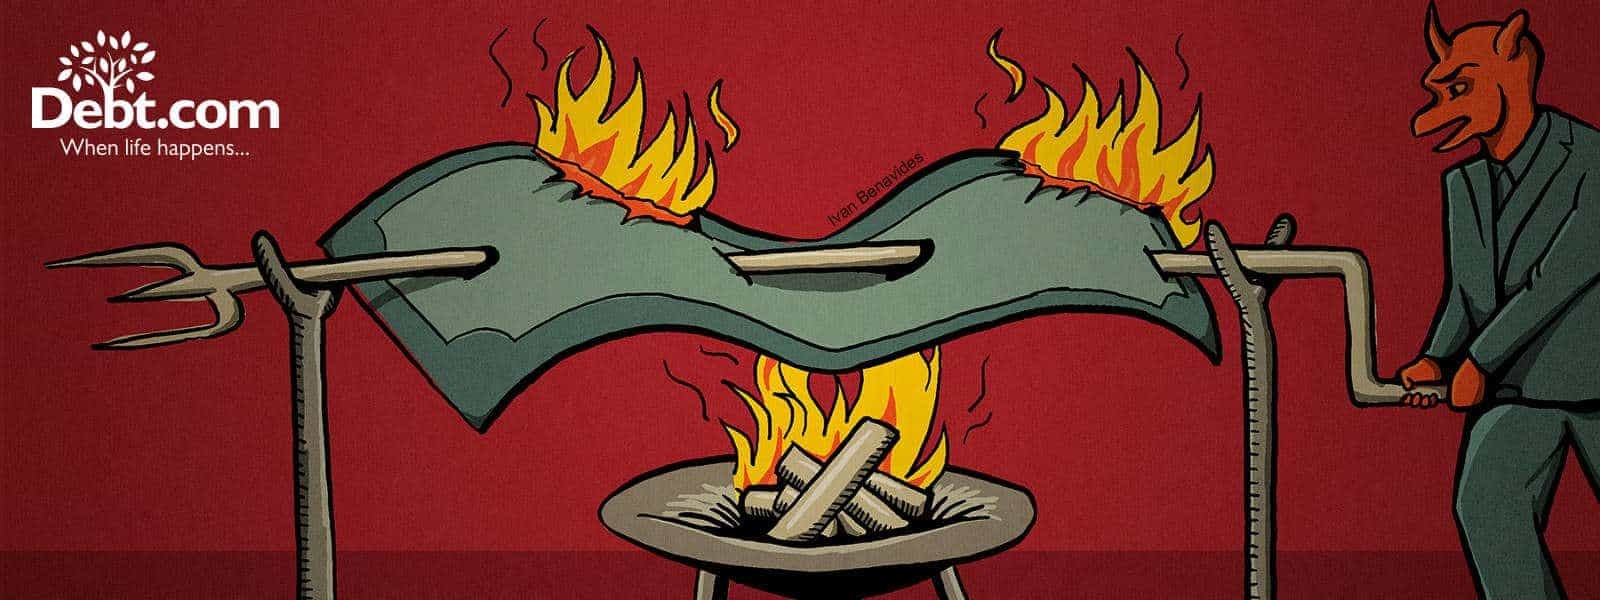 Devil burning your cash in credit hell (illustrated)